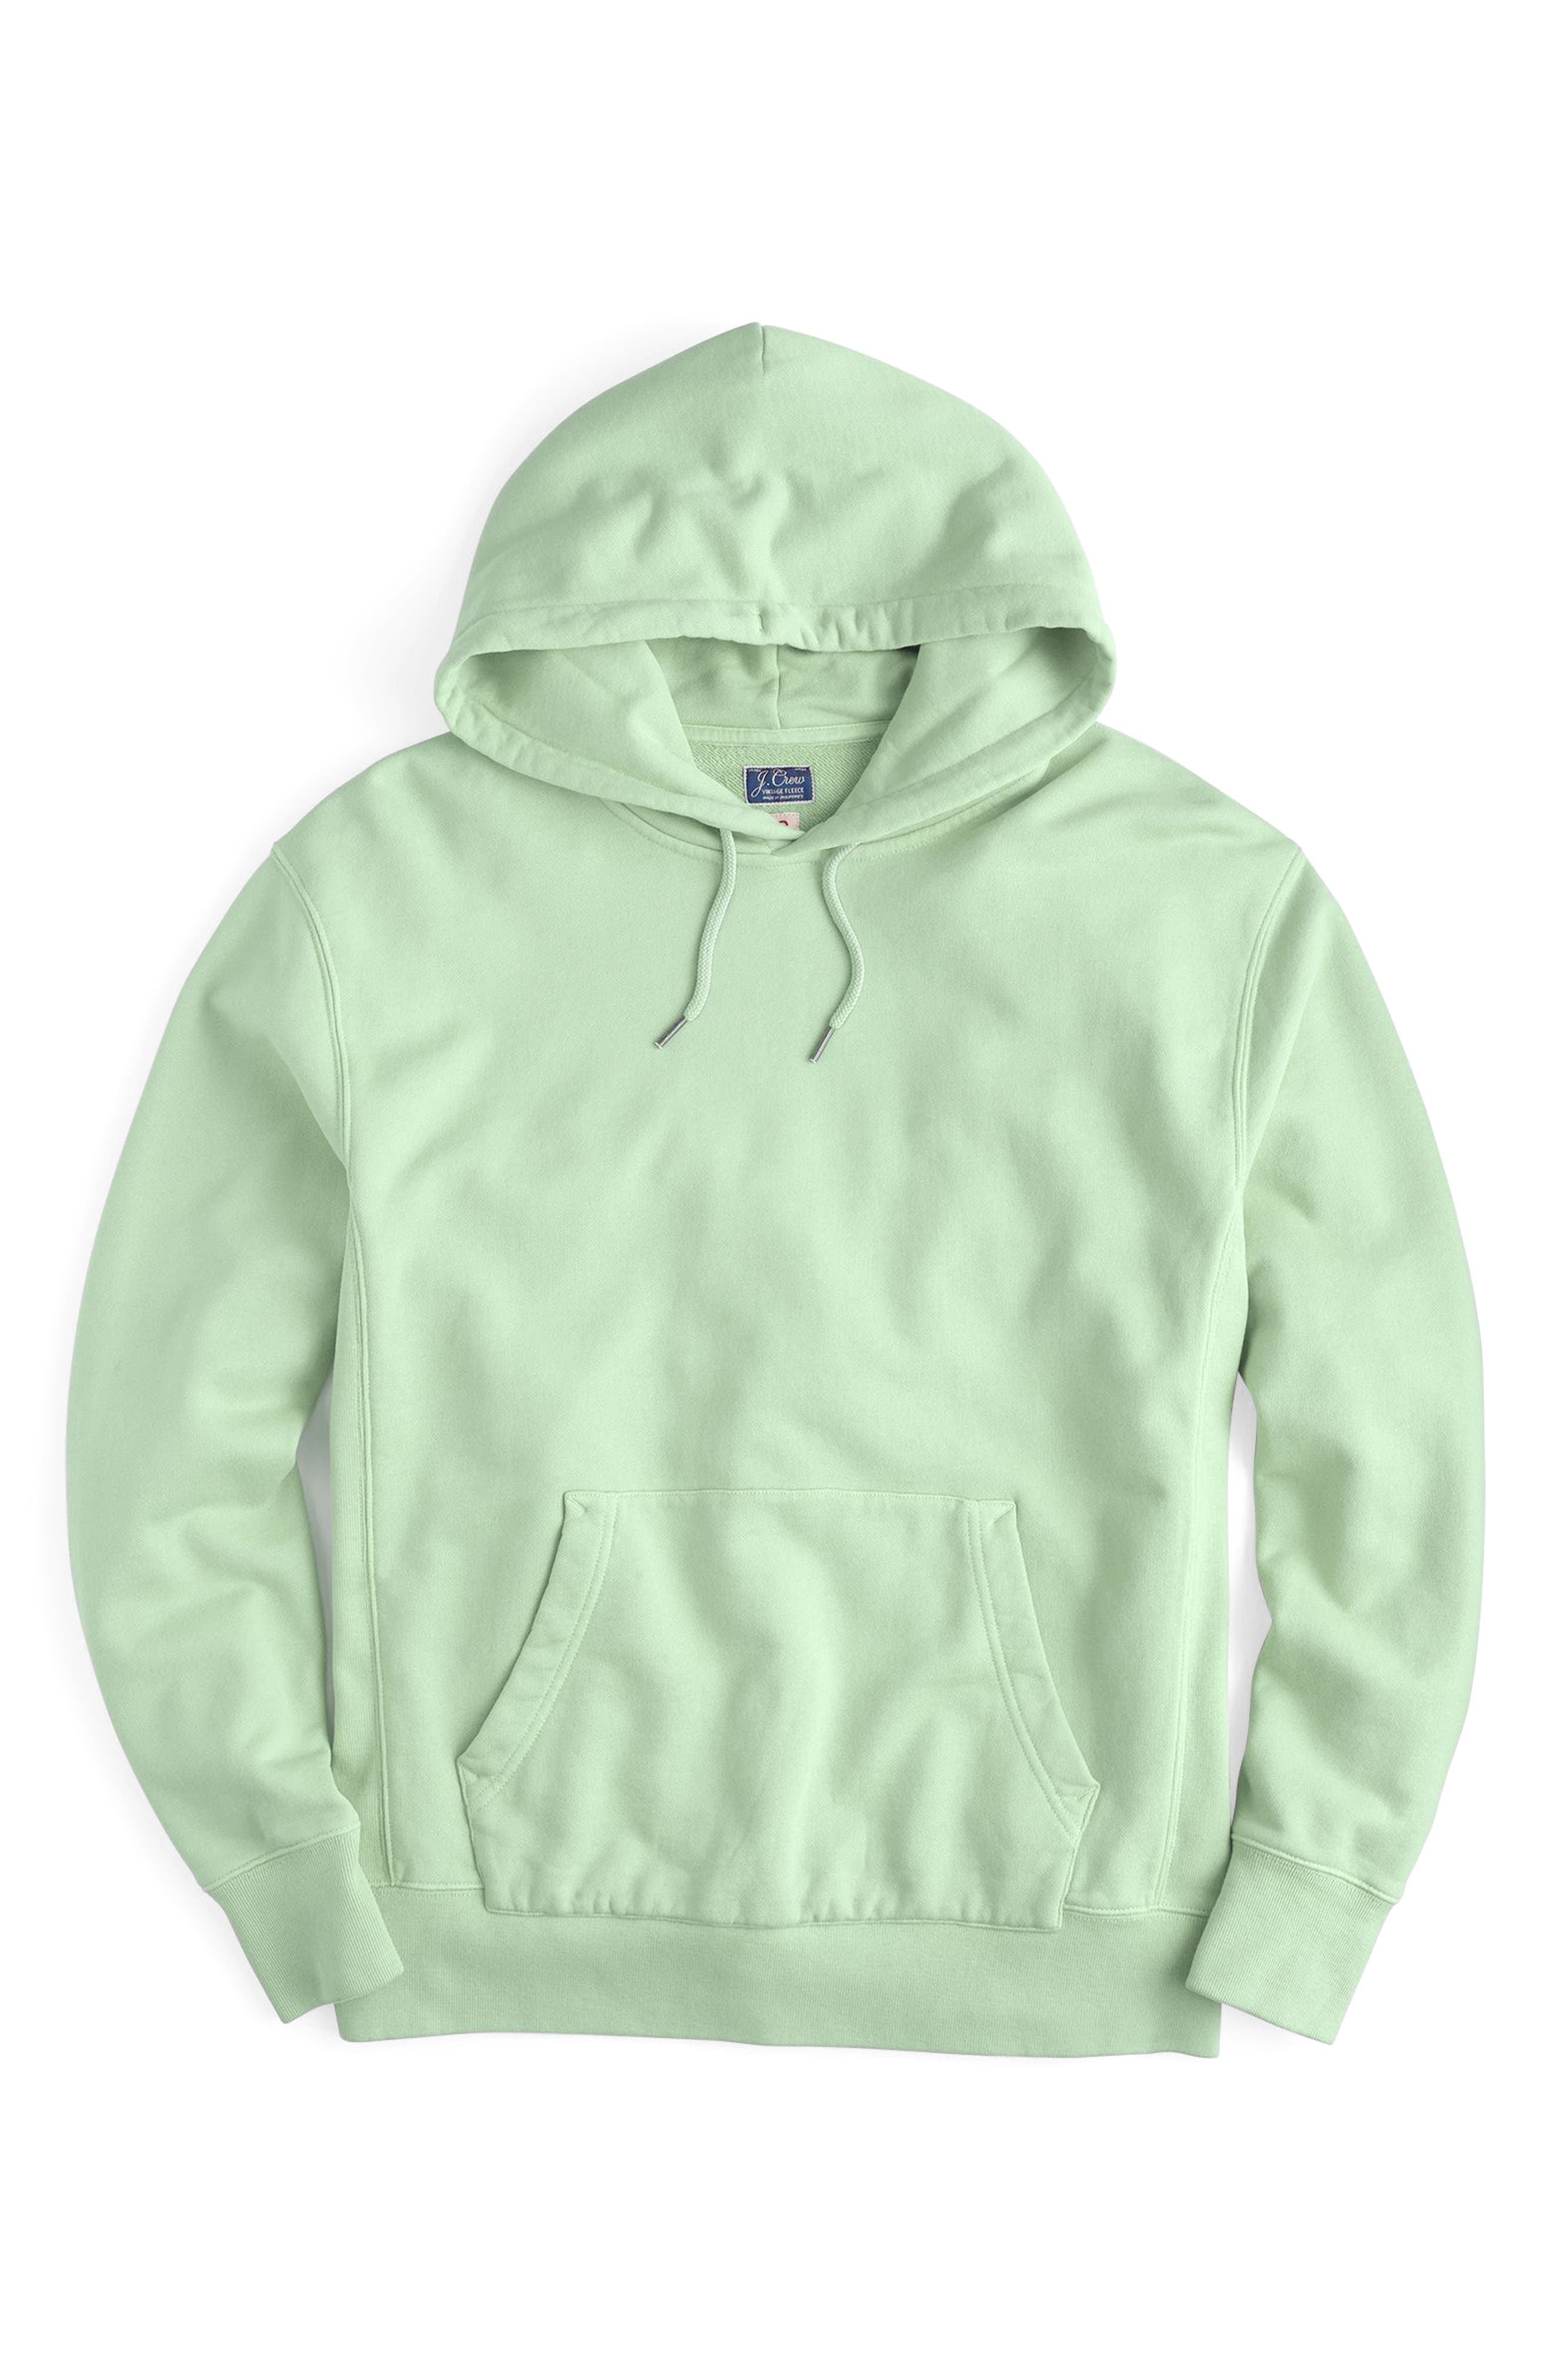 J.Crew Garment Dyed French Terry Hoodie